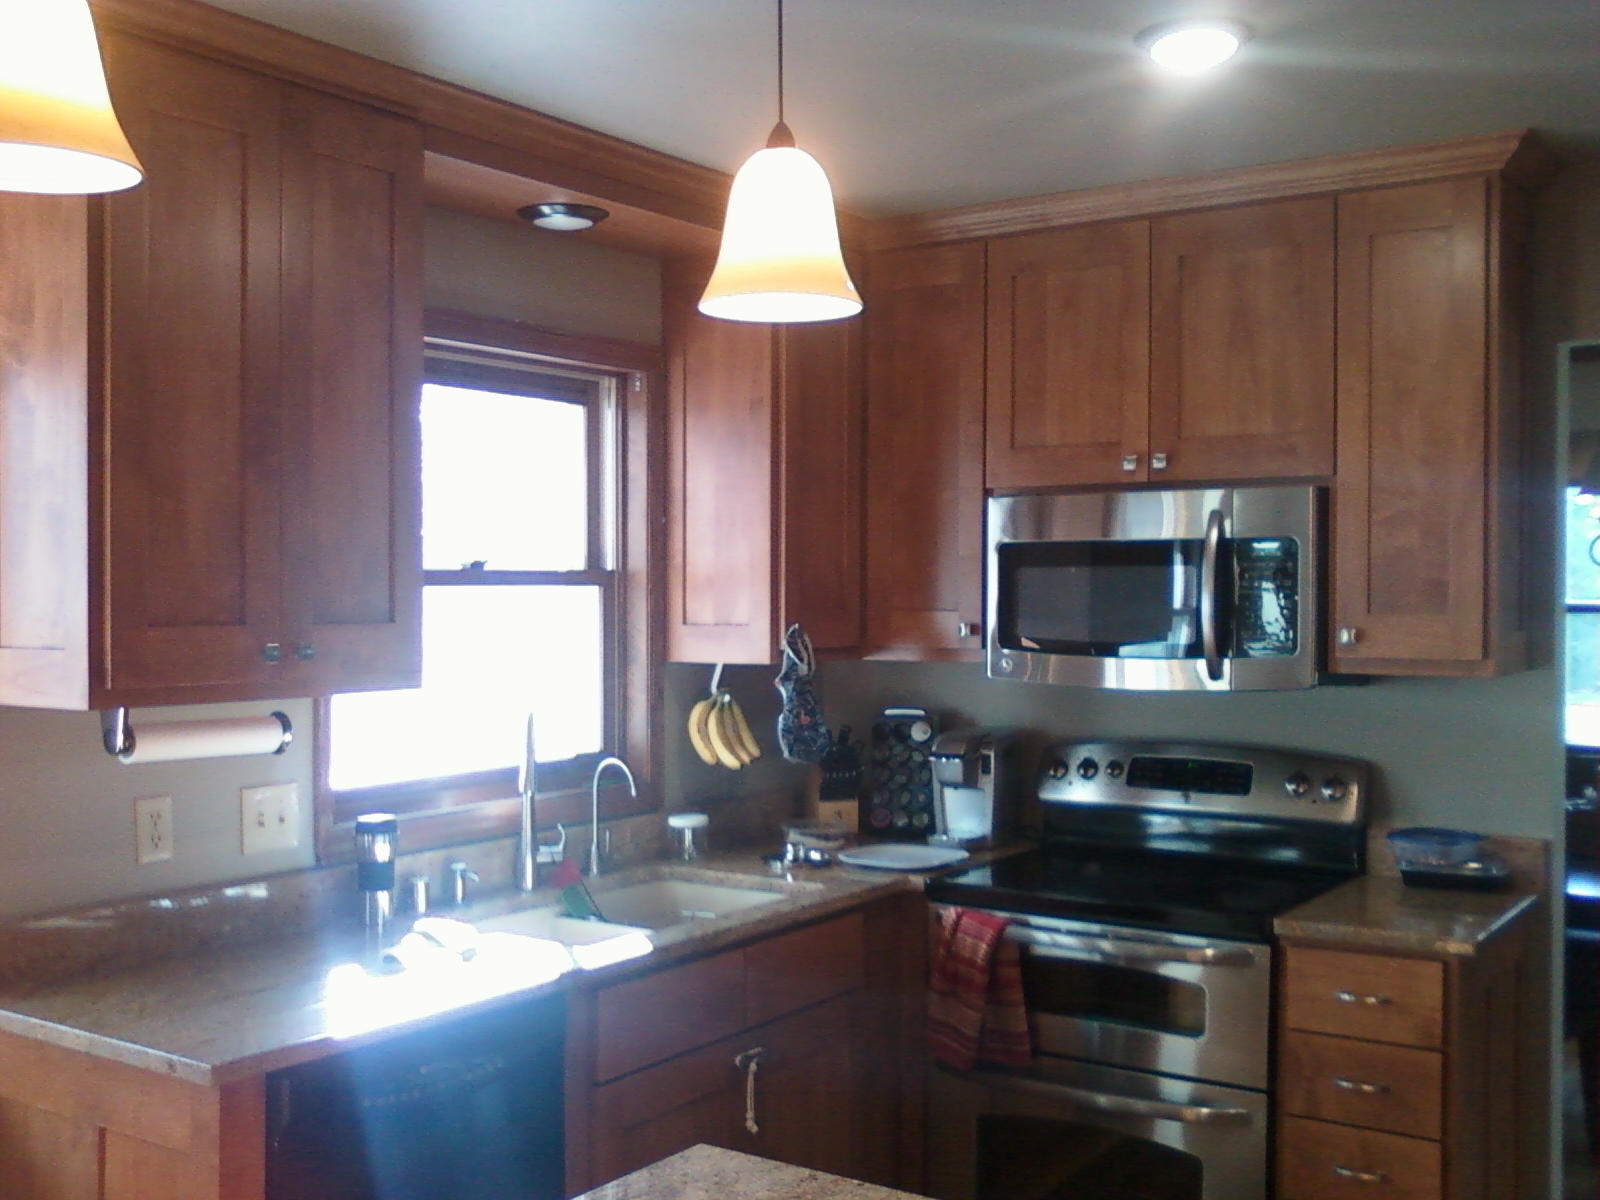 kitchen cabinets and design saga builders kitchend and bathrooms 20028